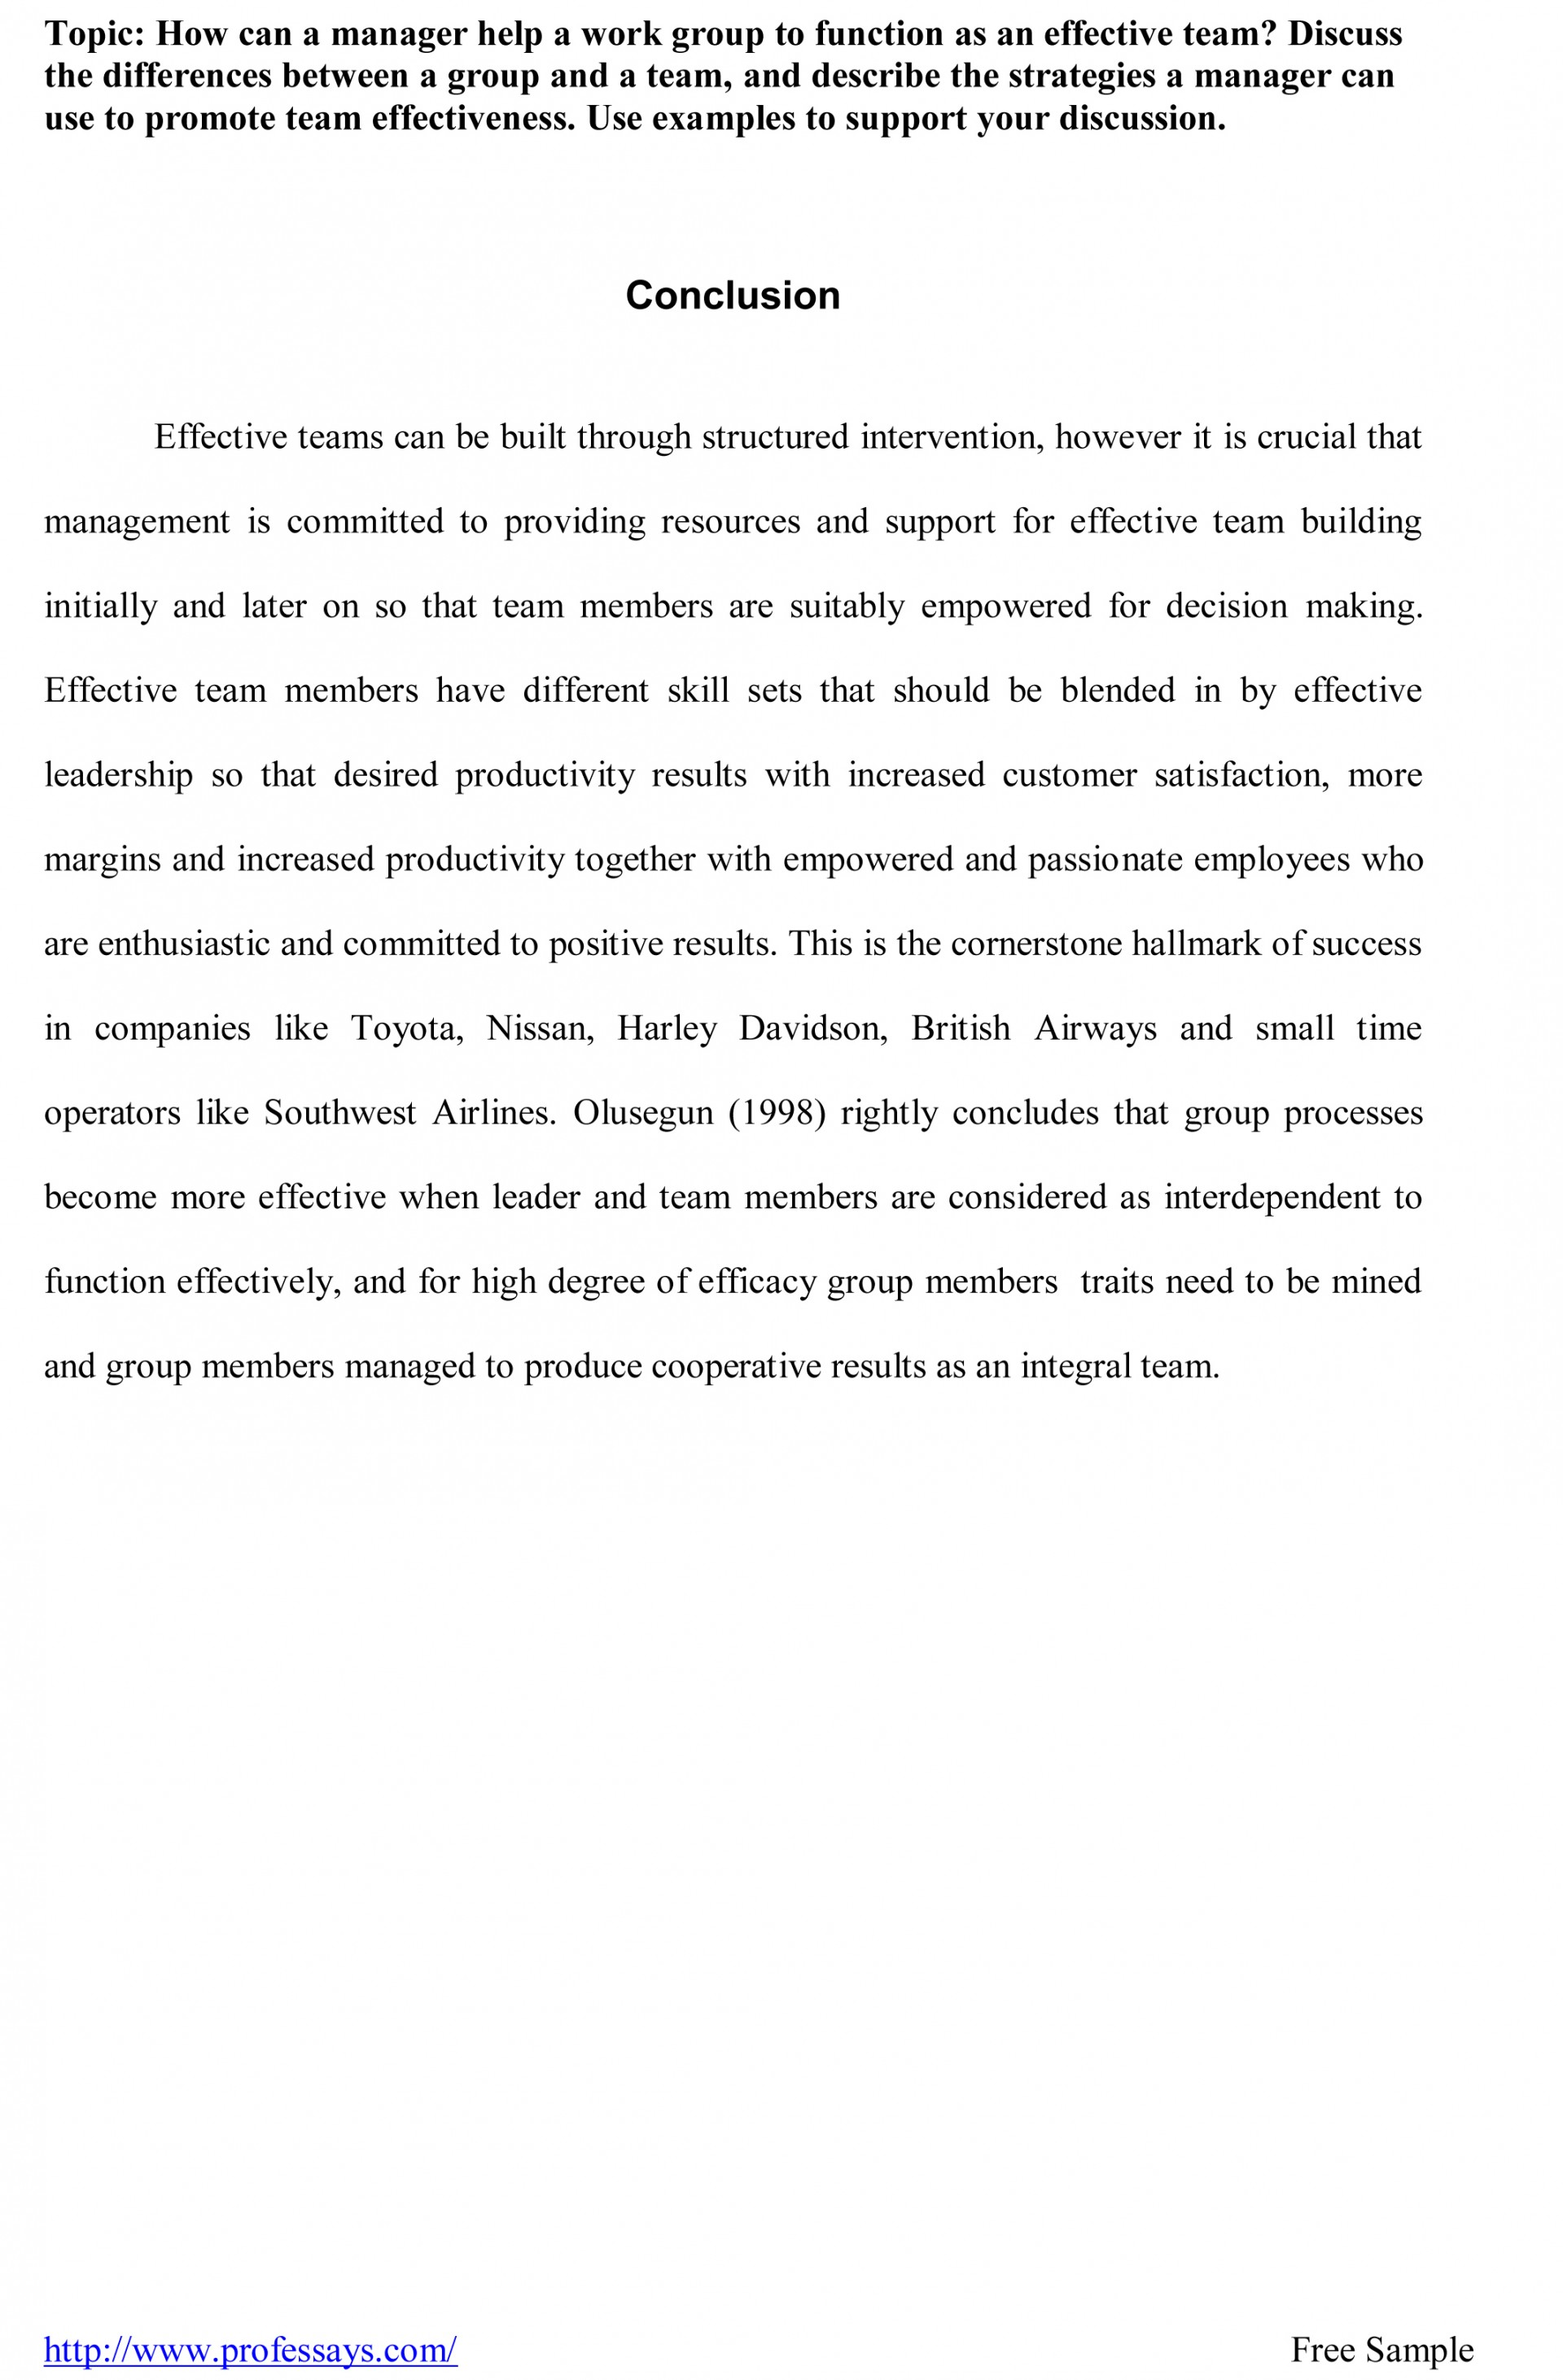 007 Research Paper Help Writing Papers Conclusion Sample For Outstanding Need My 1920